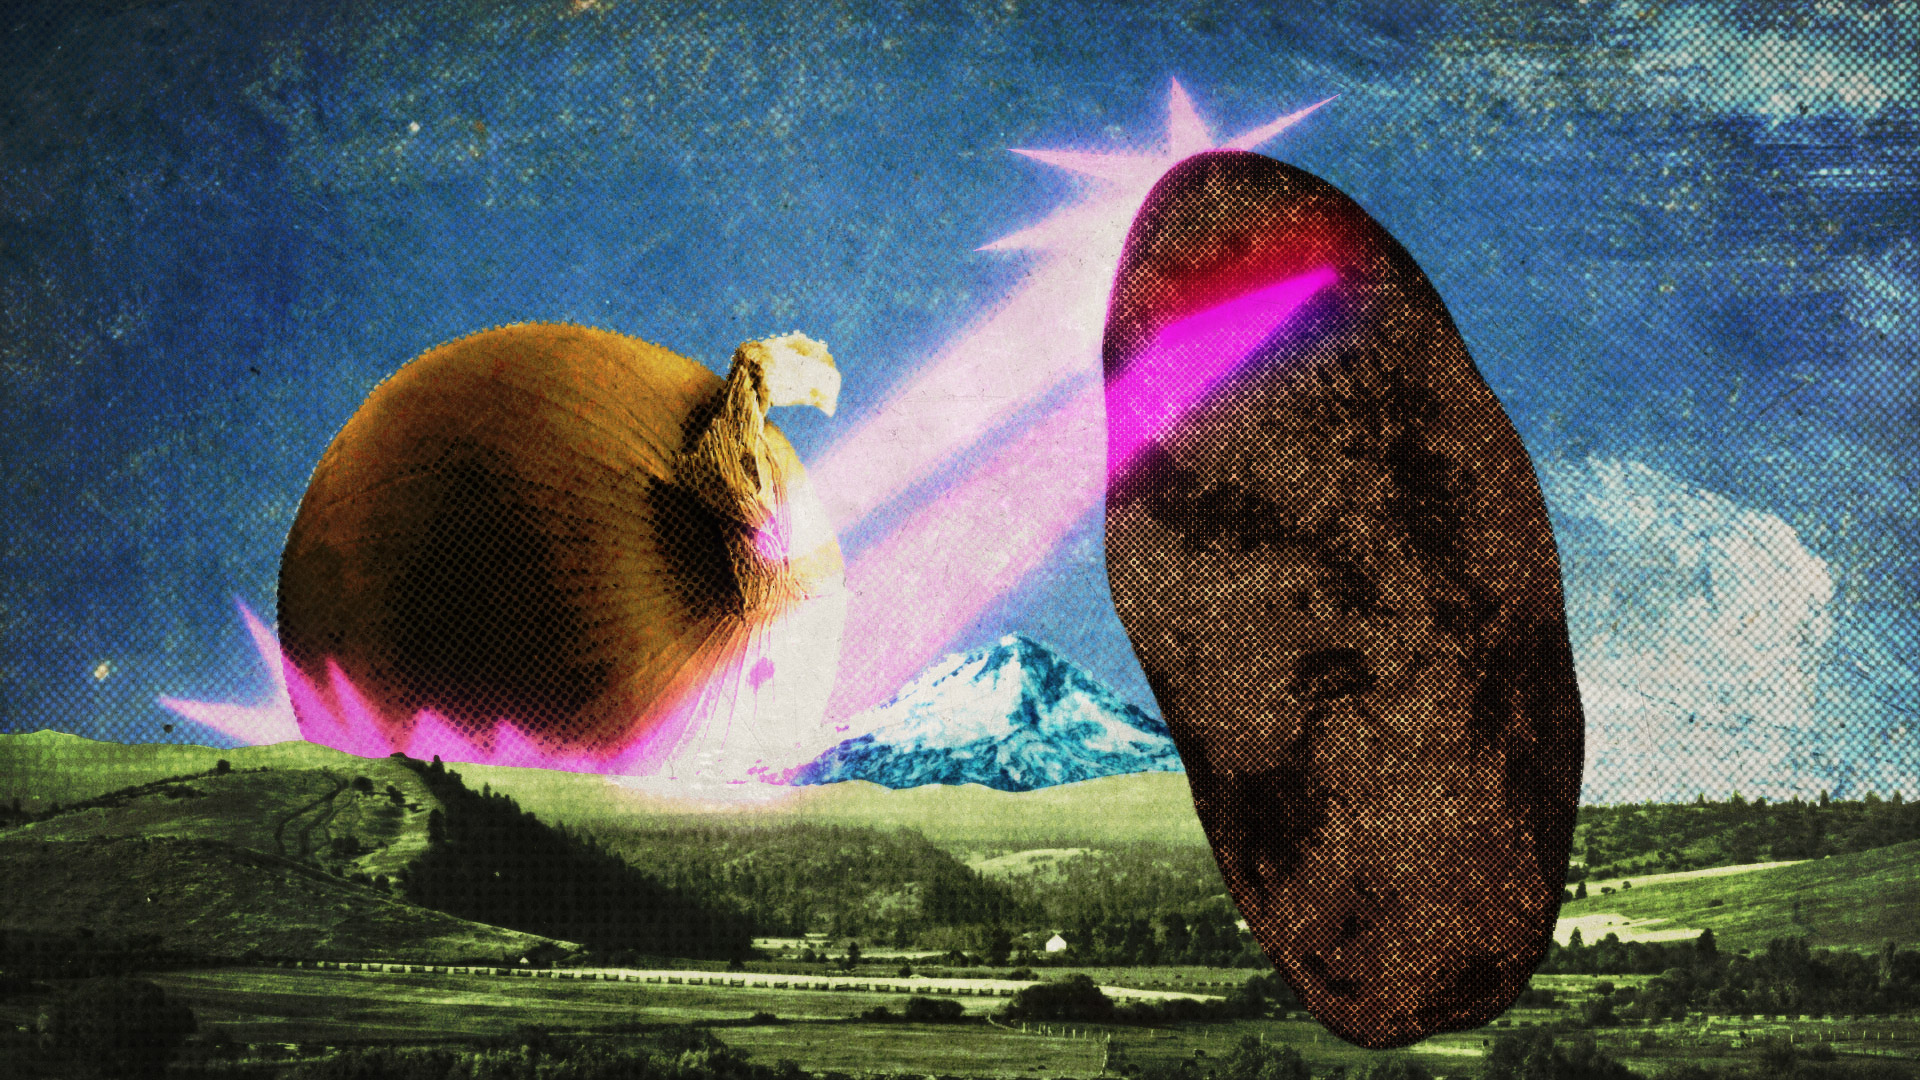 A giant potato battles a giant onion above an Oregon landscape featuring Mount Hood. Both are shooting lasers at each other.